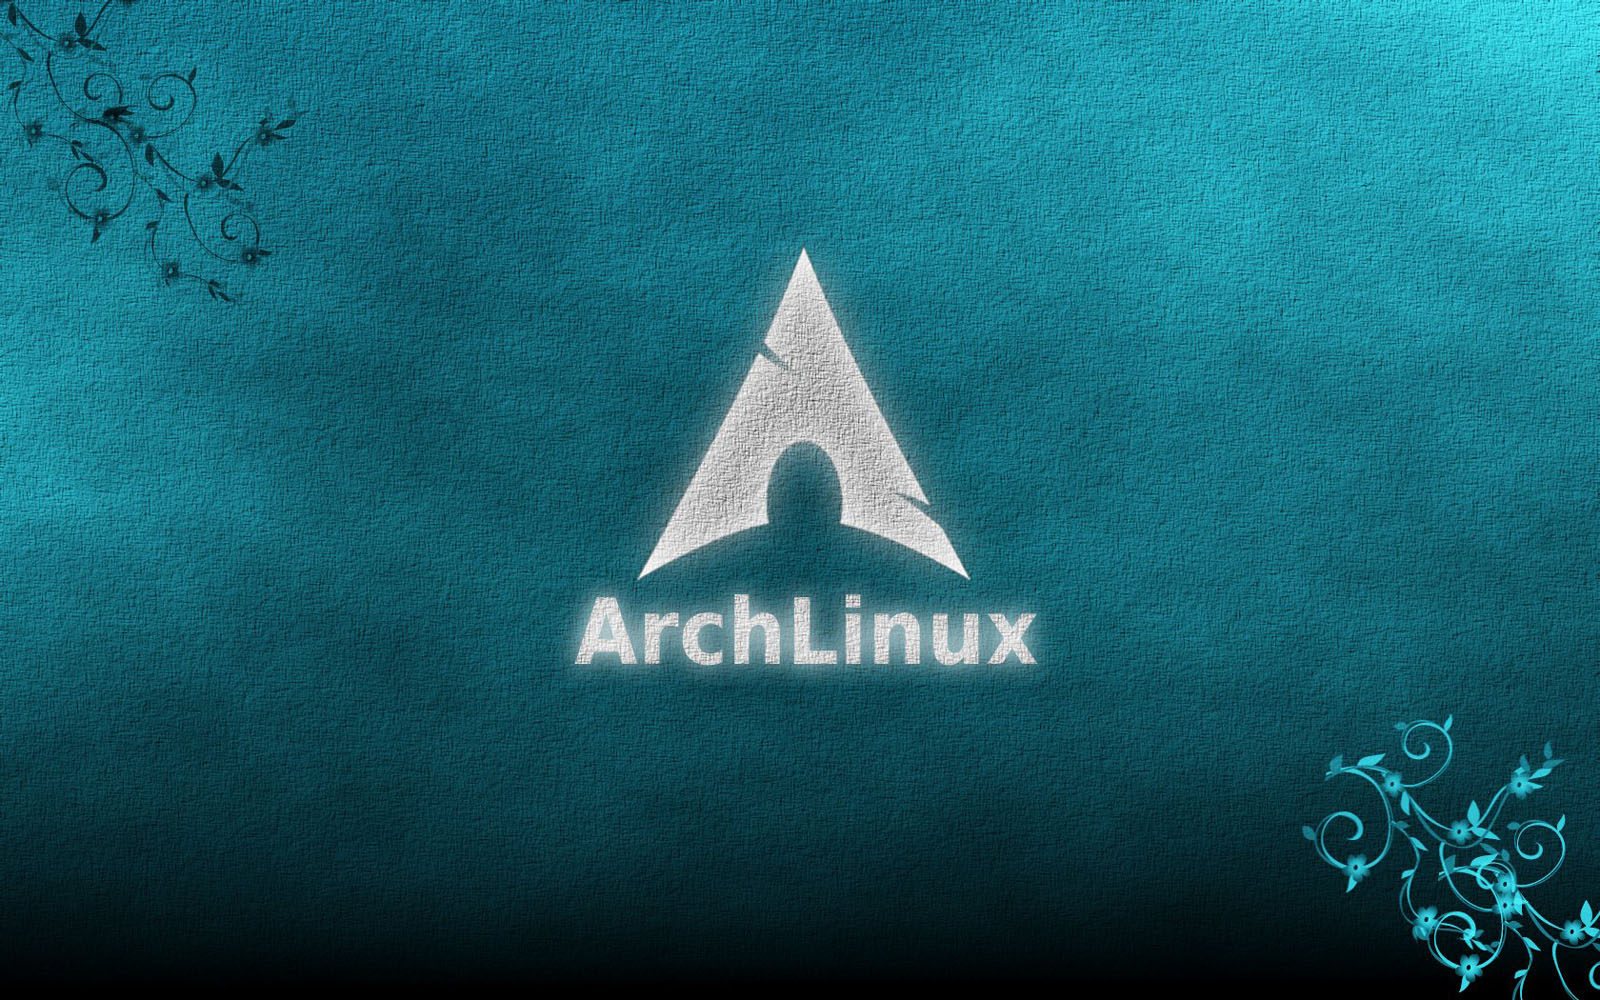 02082011, <b>Arch Linux</b>, <b>Xfce</b> by froggaz on DeviantArt